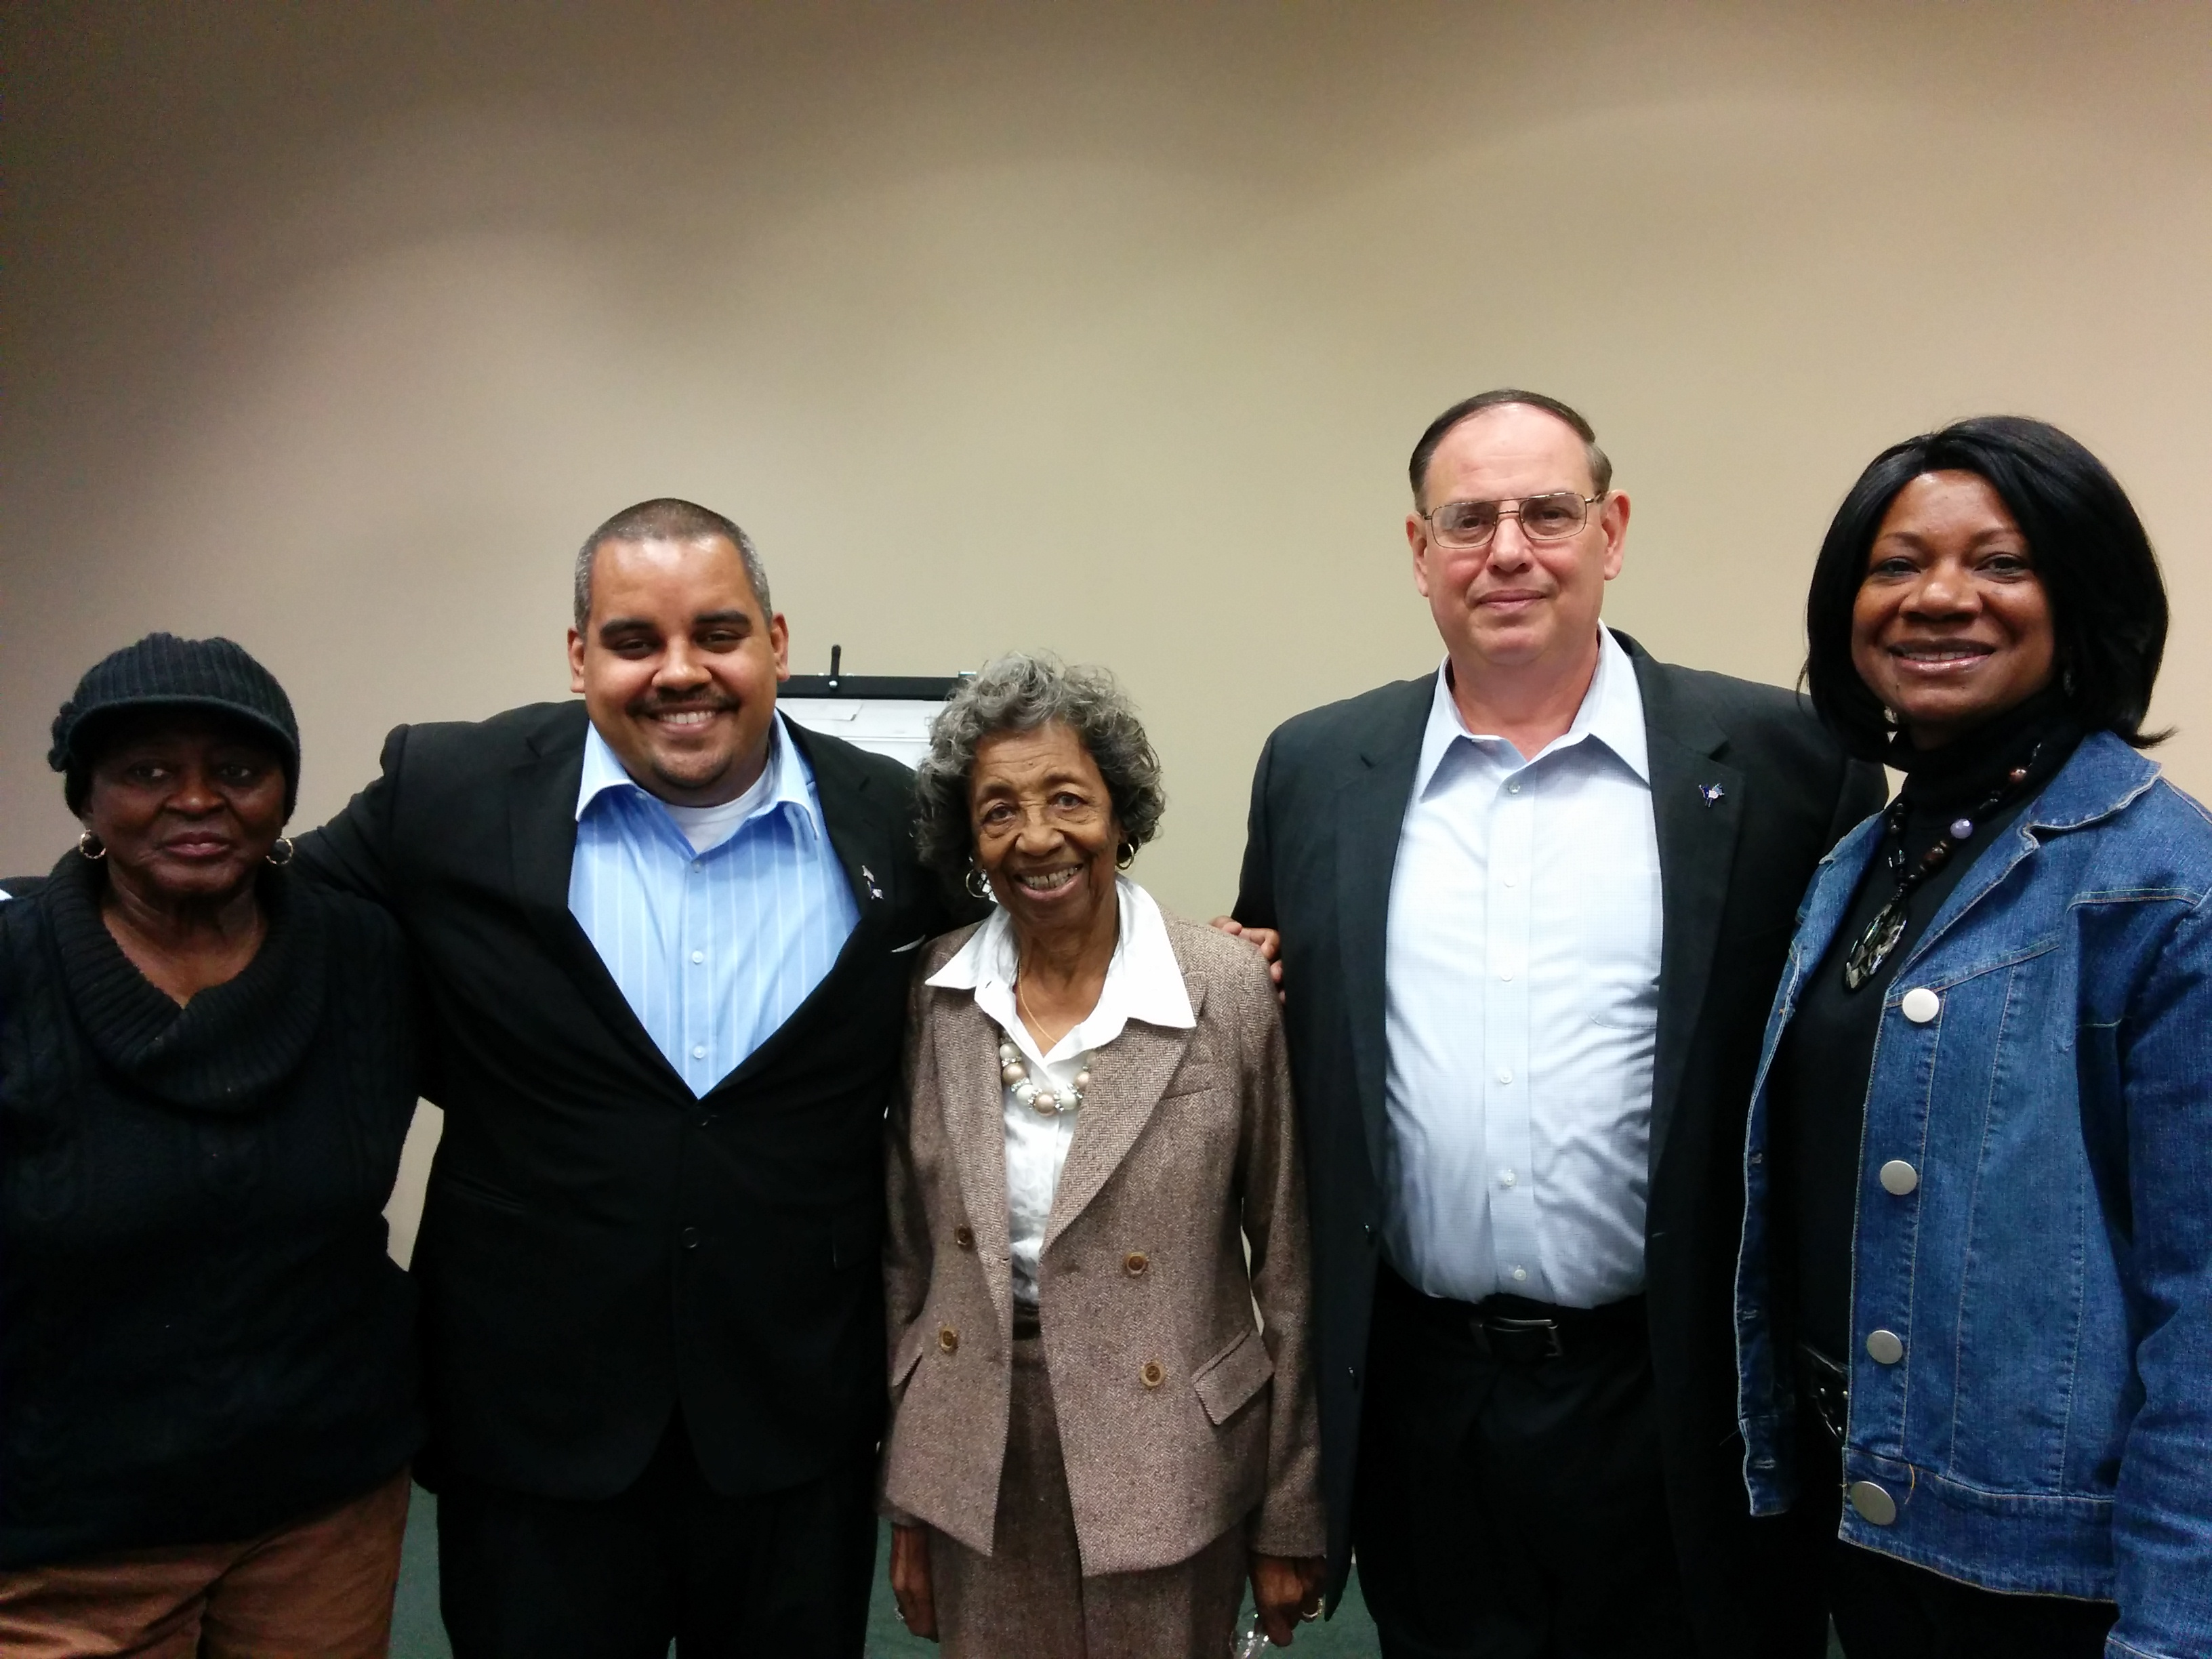 RECAP: New DPG State Committee Members from Muscogee County